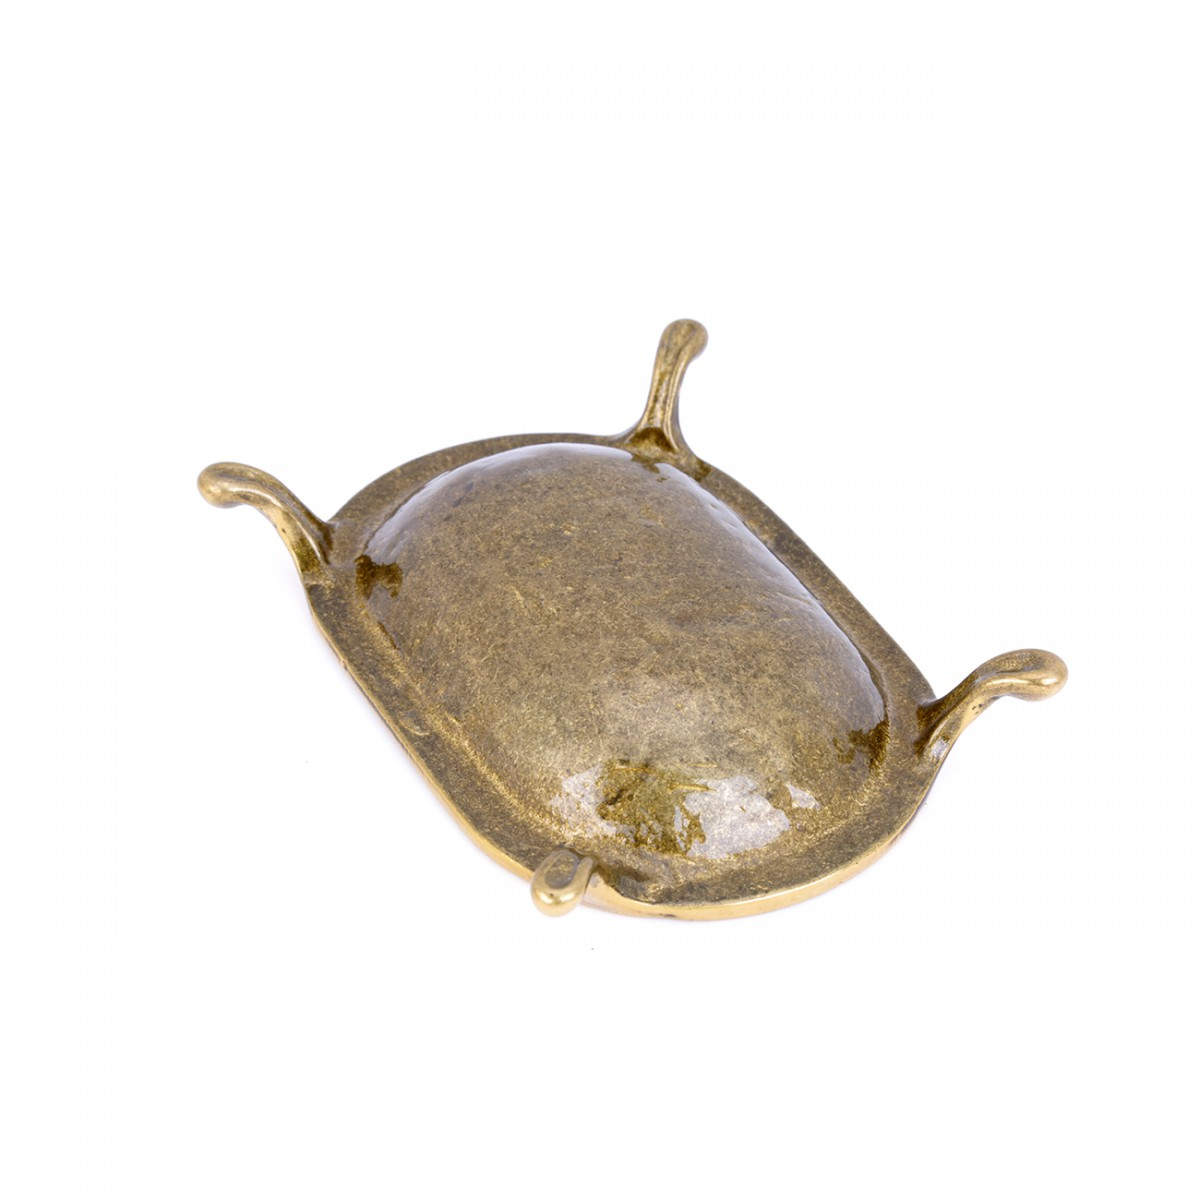 Vintage Freestanding Brass Soap Dish Clawfoot Tub Style